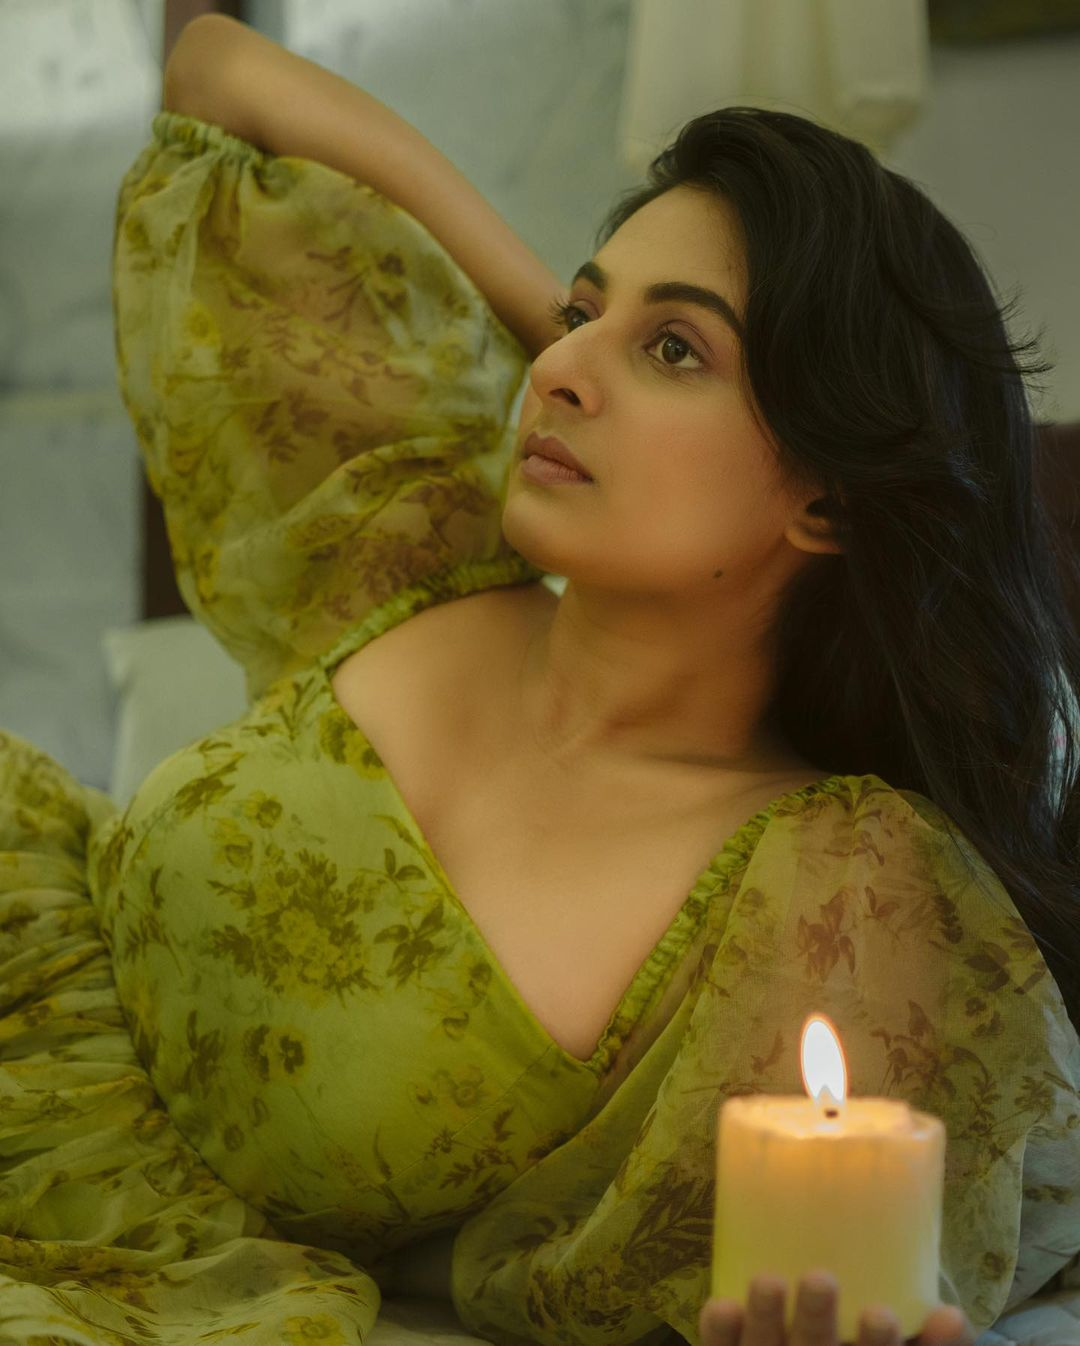 Esther Anil Latest Photoshoot, Esther Anil  green adress photoshoot, Esther Anil candle photoshoot, Esther Anil 2021 august